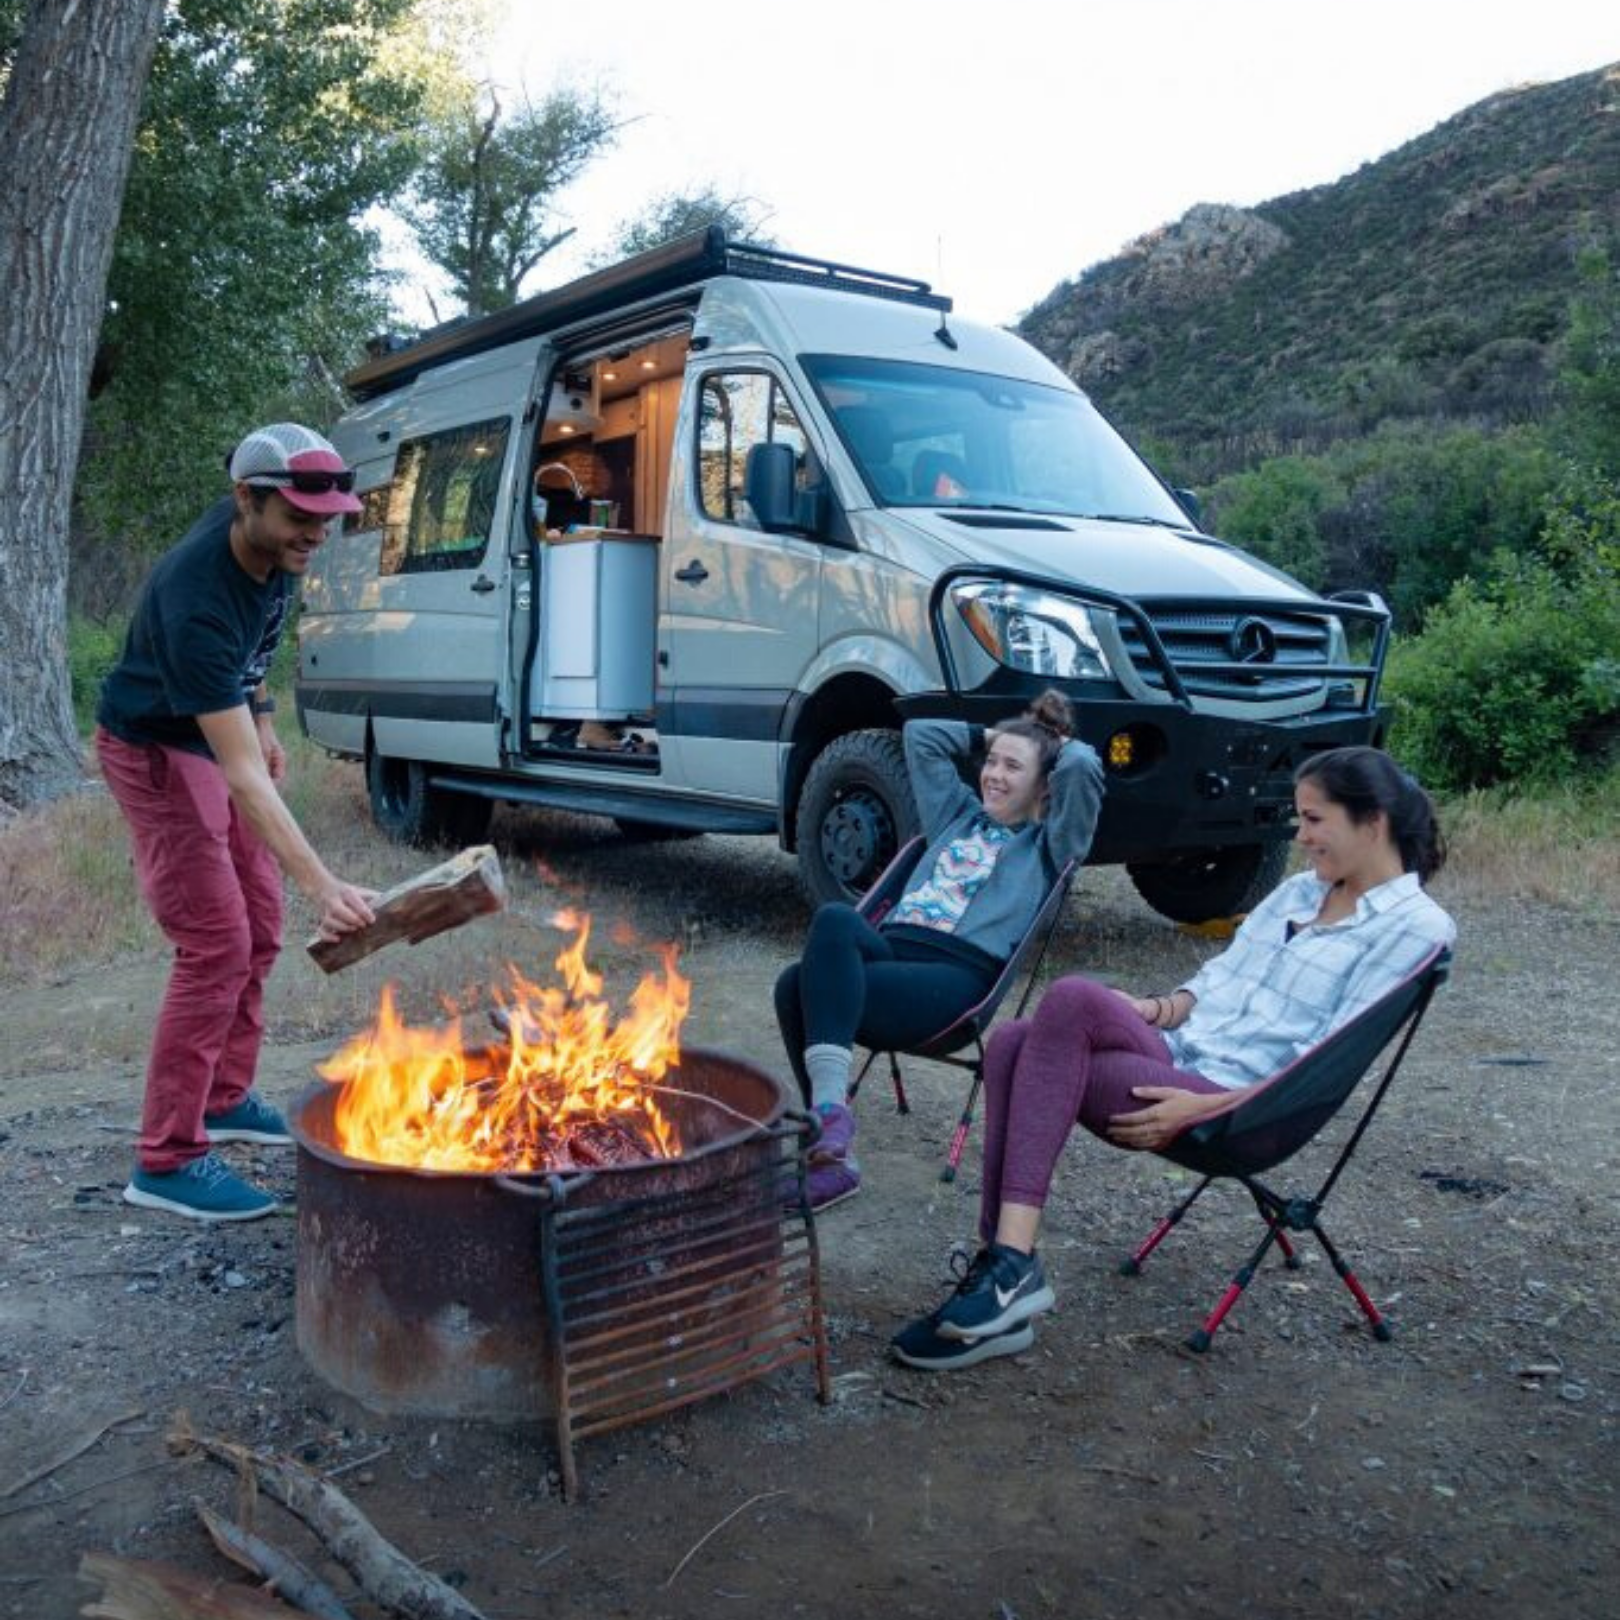 camping with a camper van